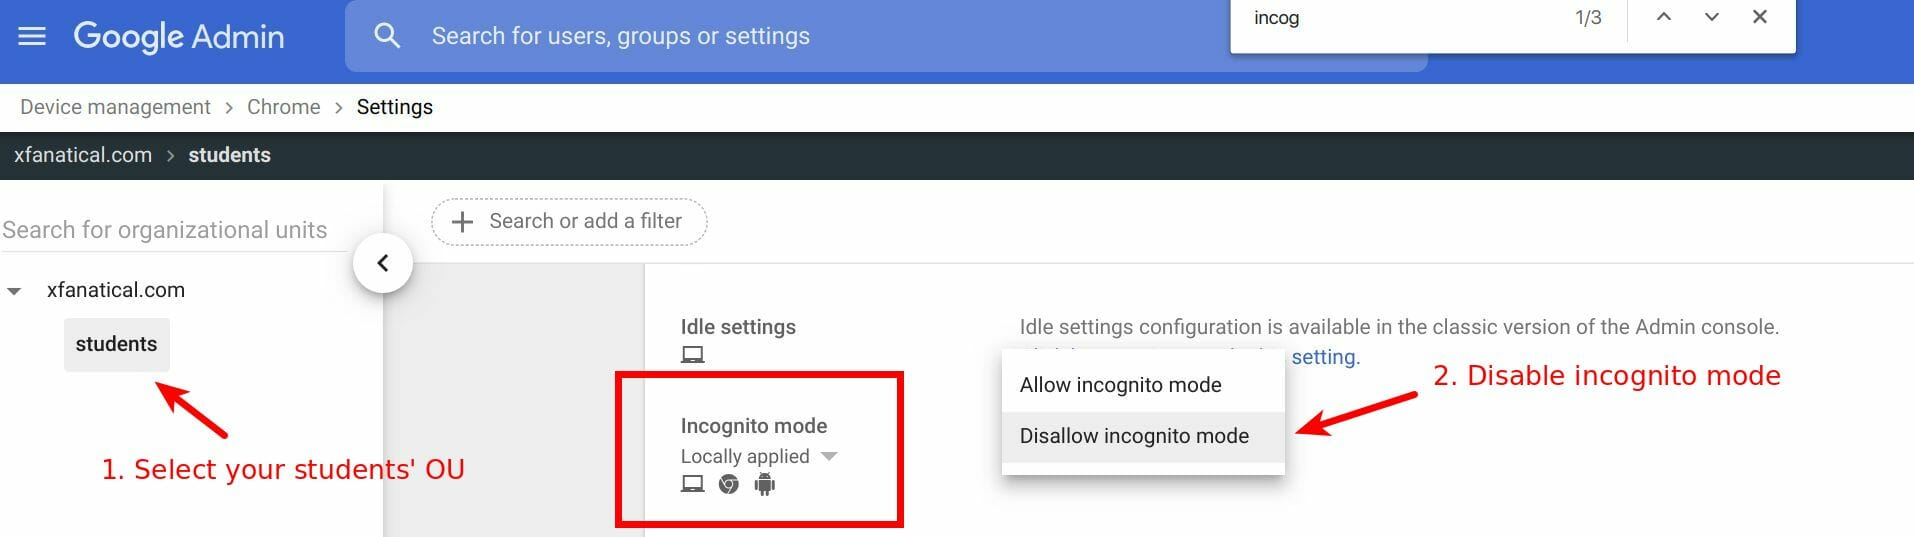 Disable incognito mode in Chrome settings